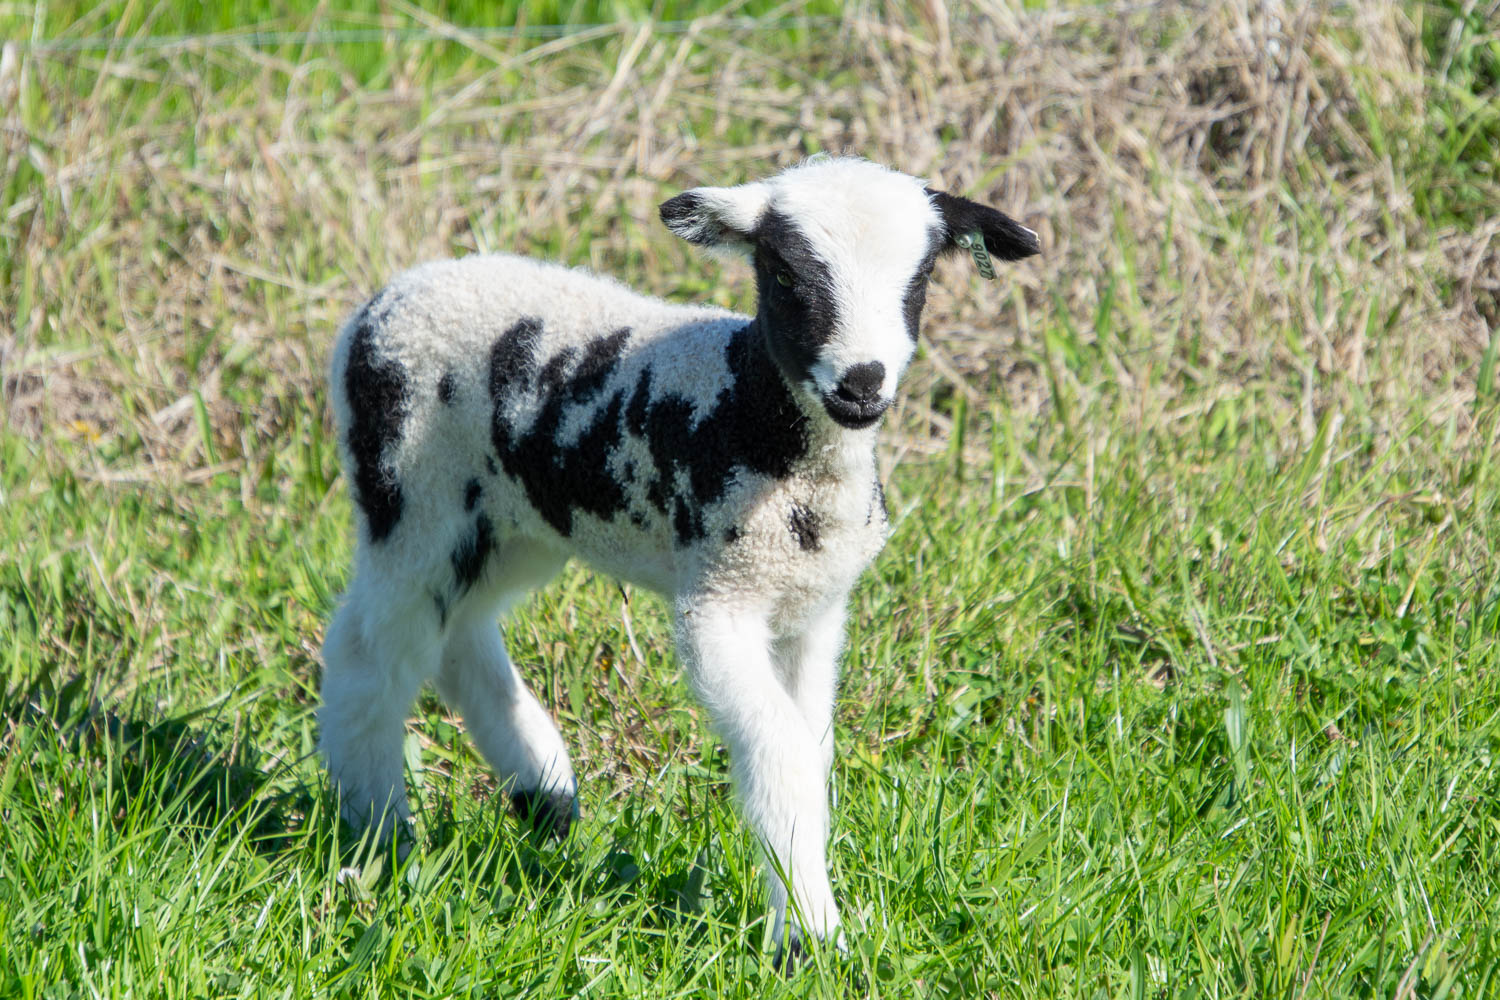 Jacob ewe lamb